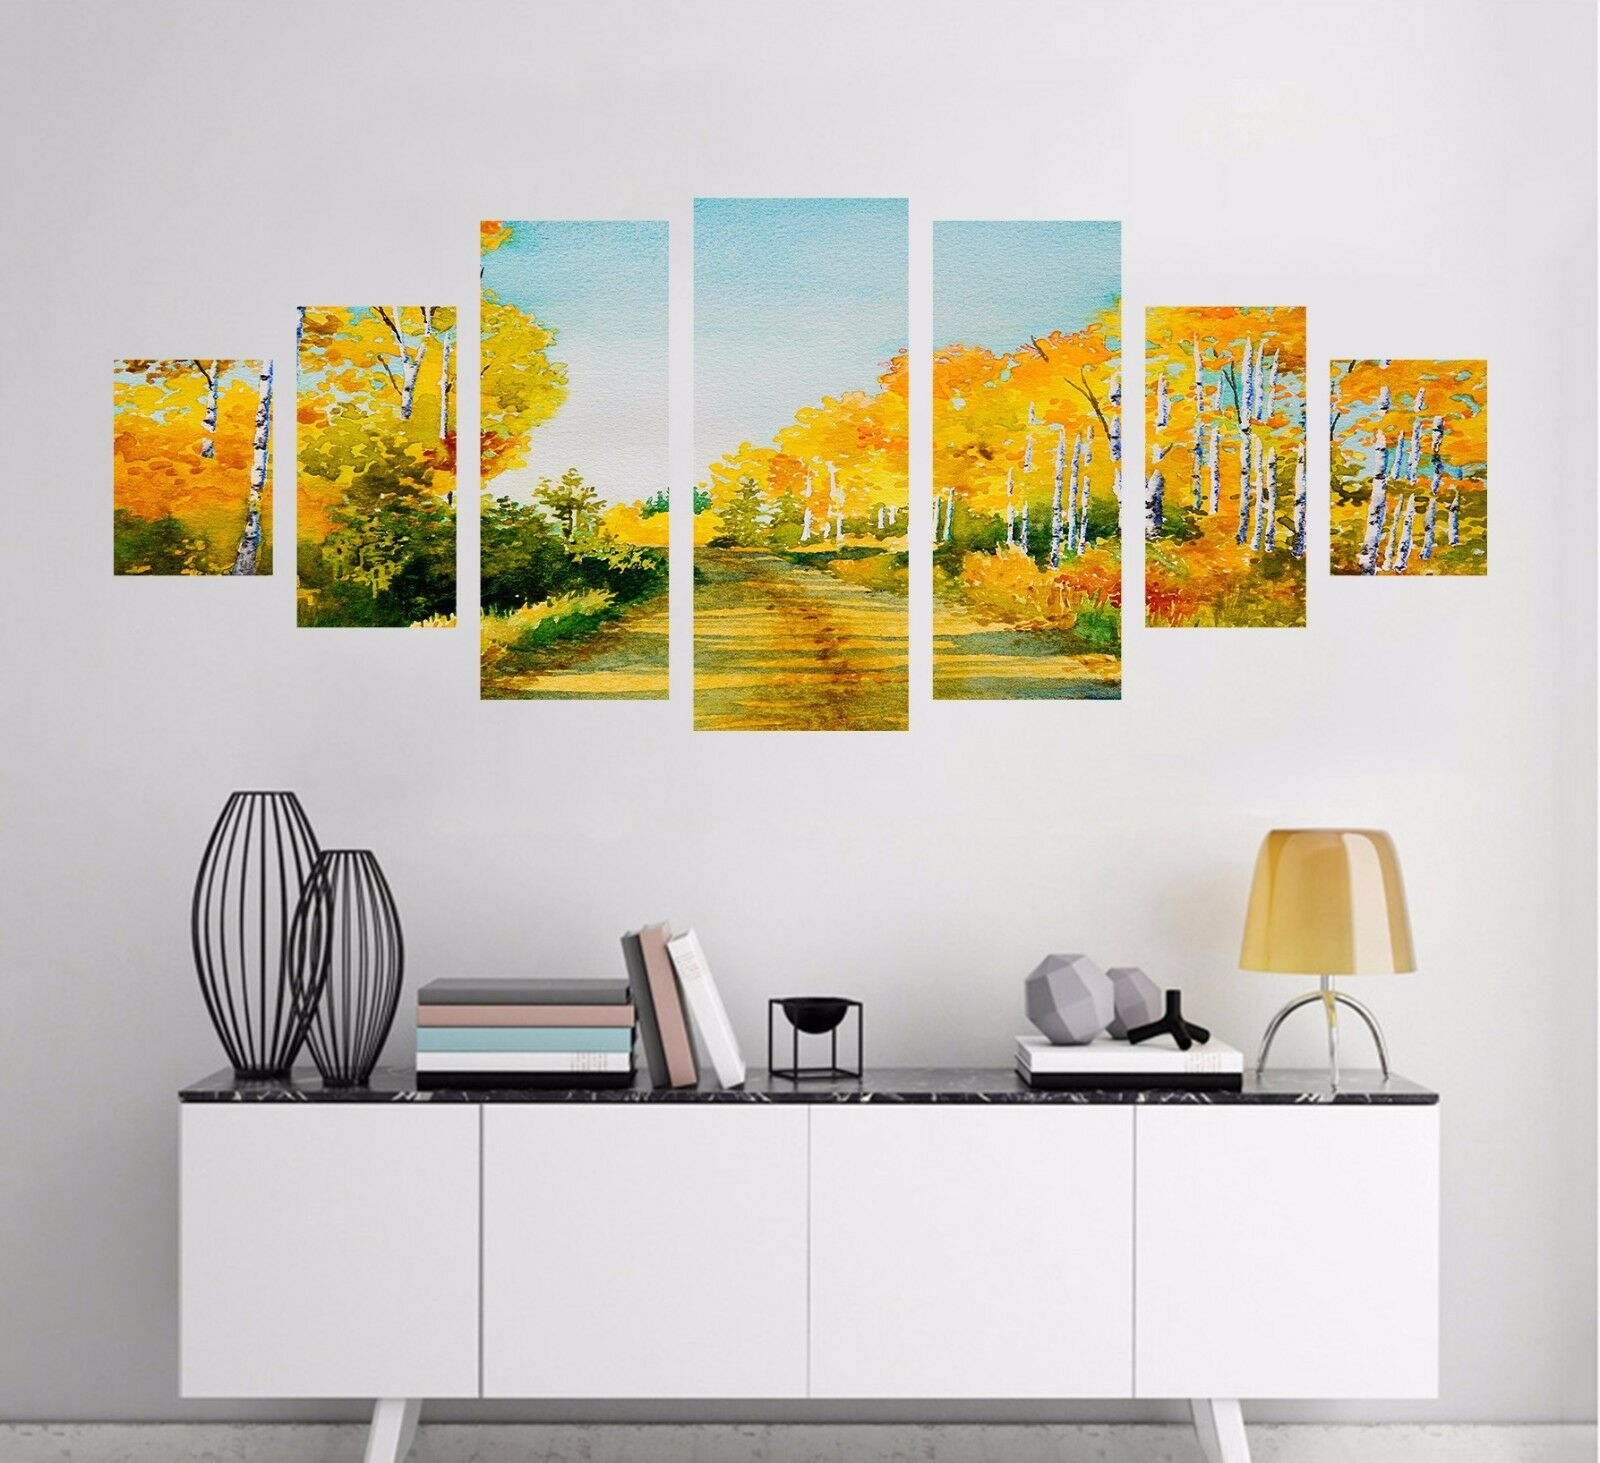 3D Golden Forest 56 Unframed Print Wall Paper Decal Wall Deco Indoor AJ Wall